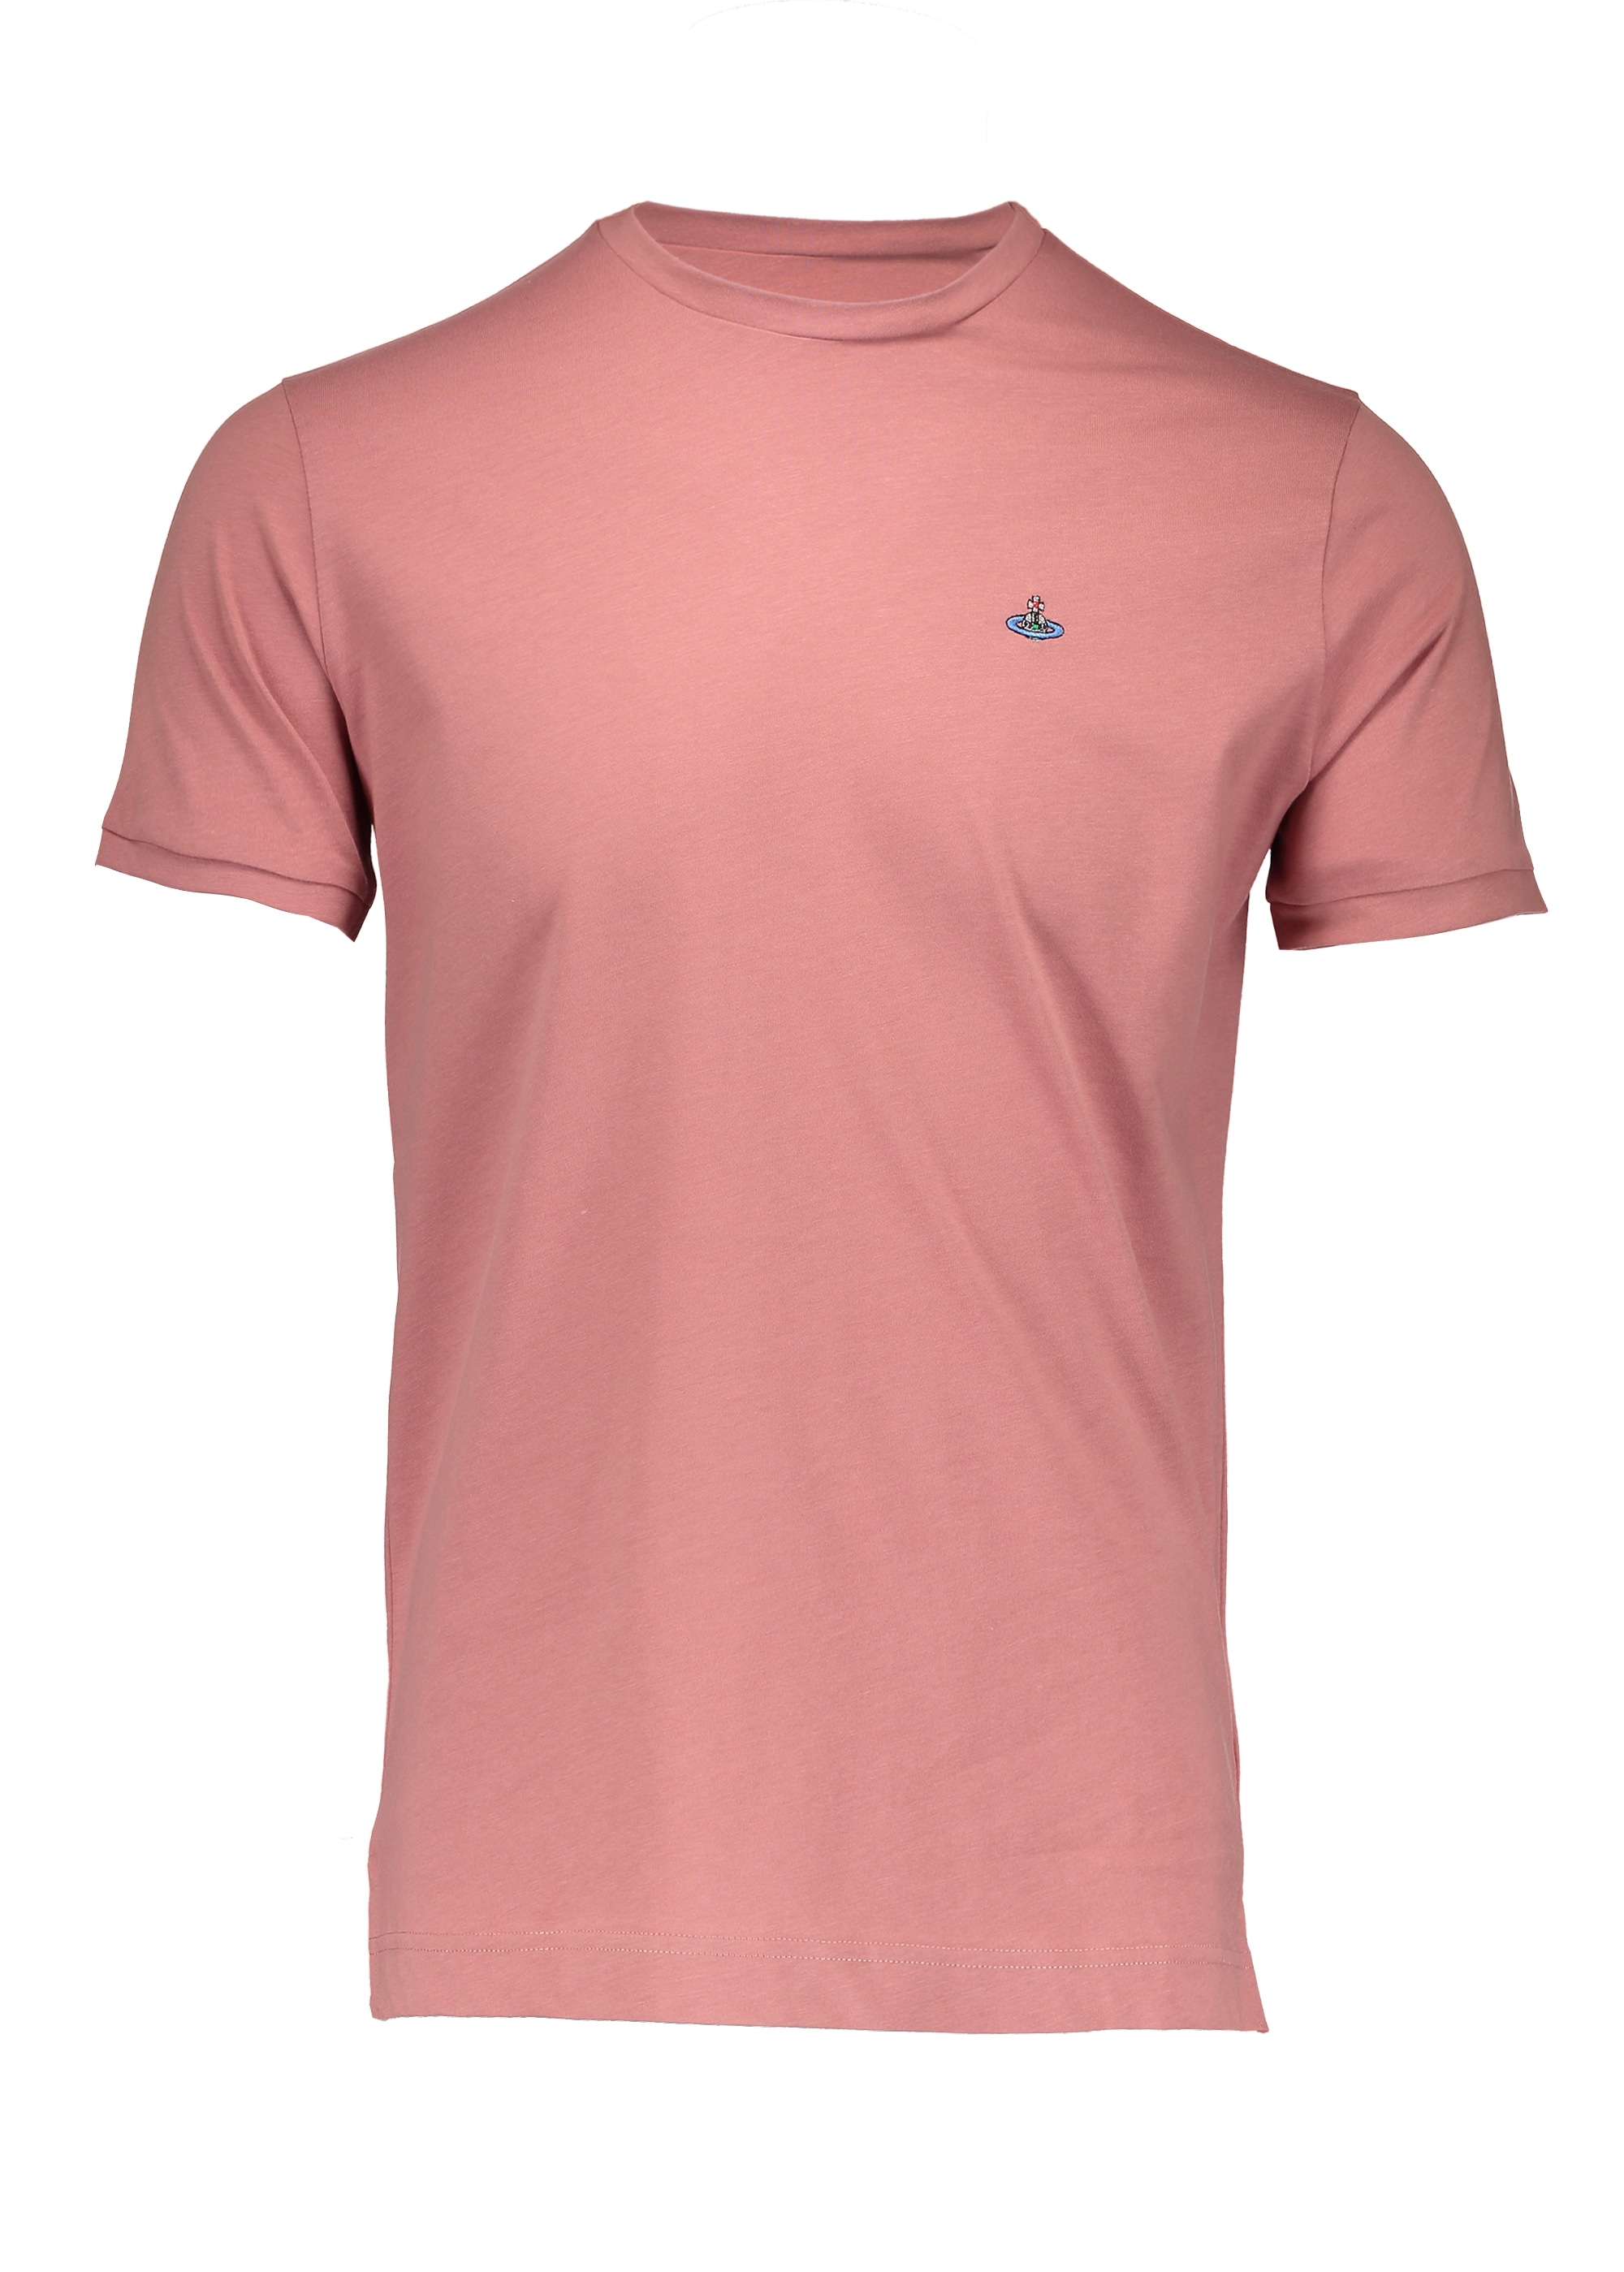 clearance prices skate shoes 100% high quality Vivienne Westwood Mens Embroidered Logo T-Shirt - Pink